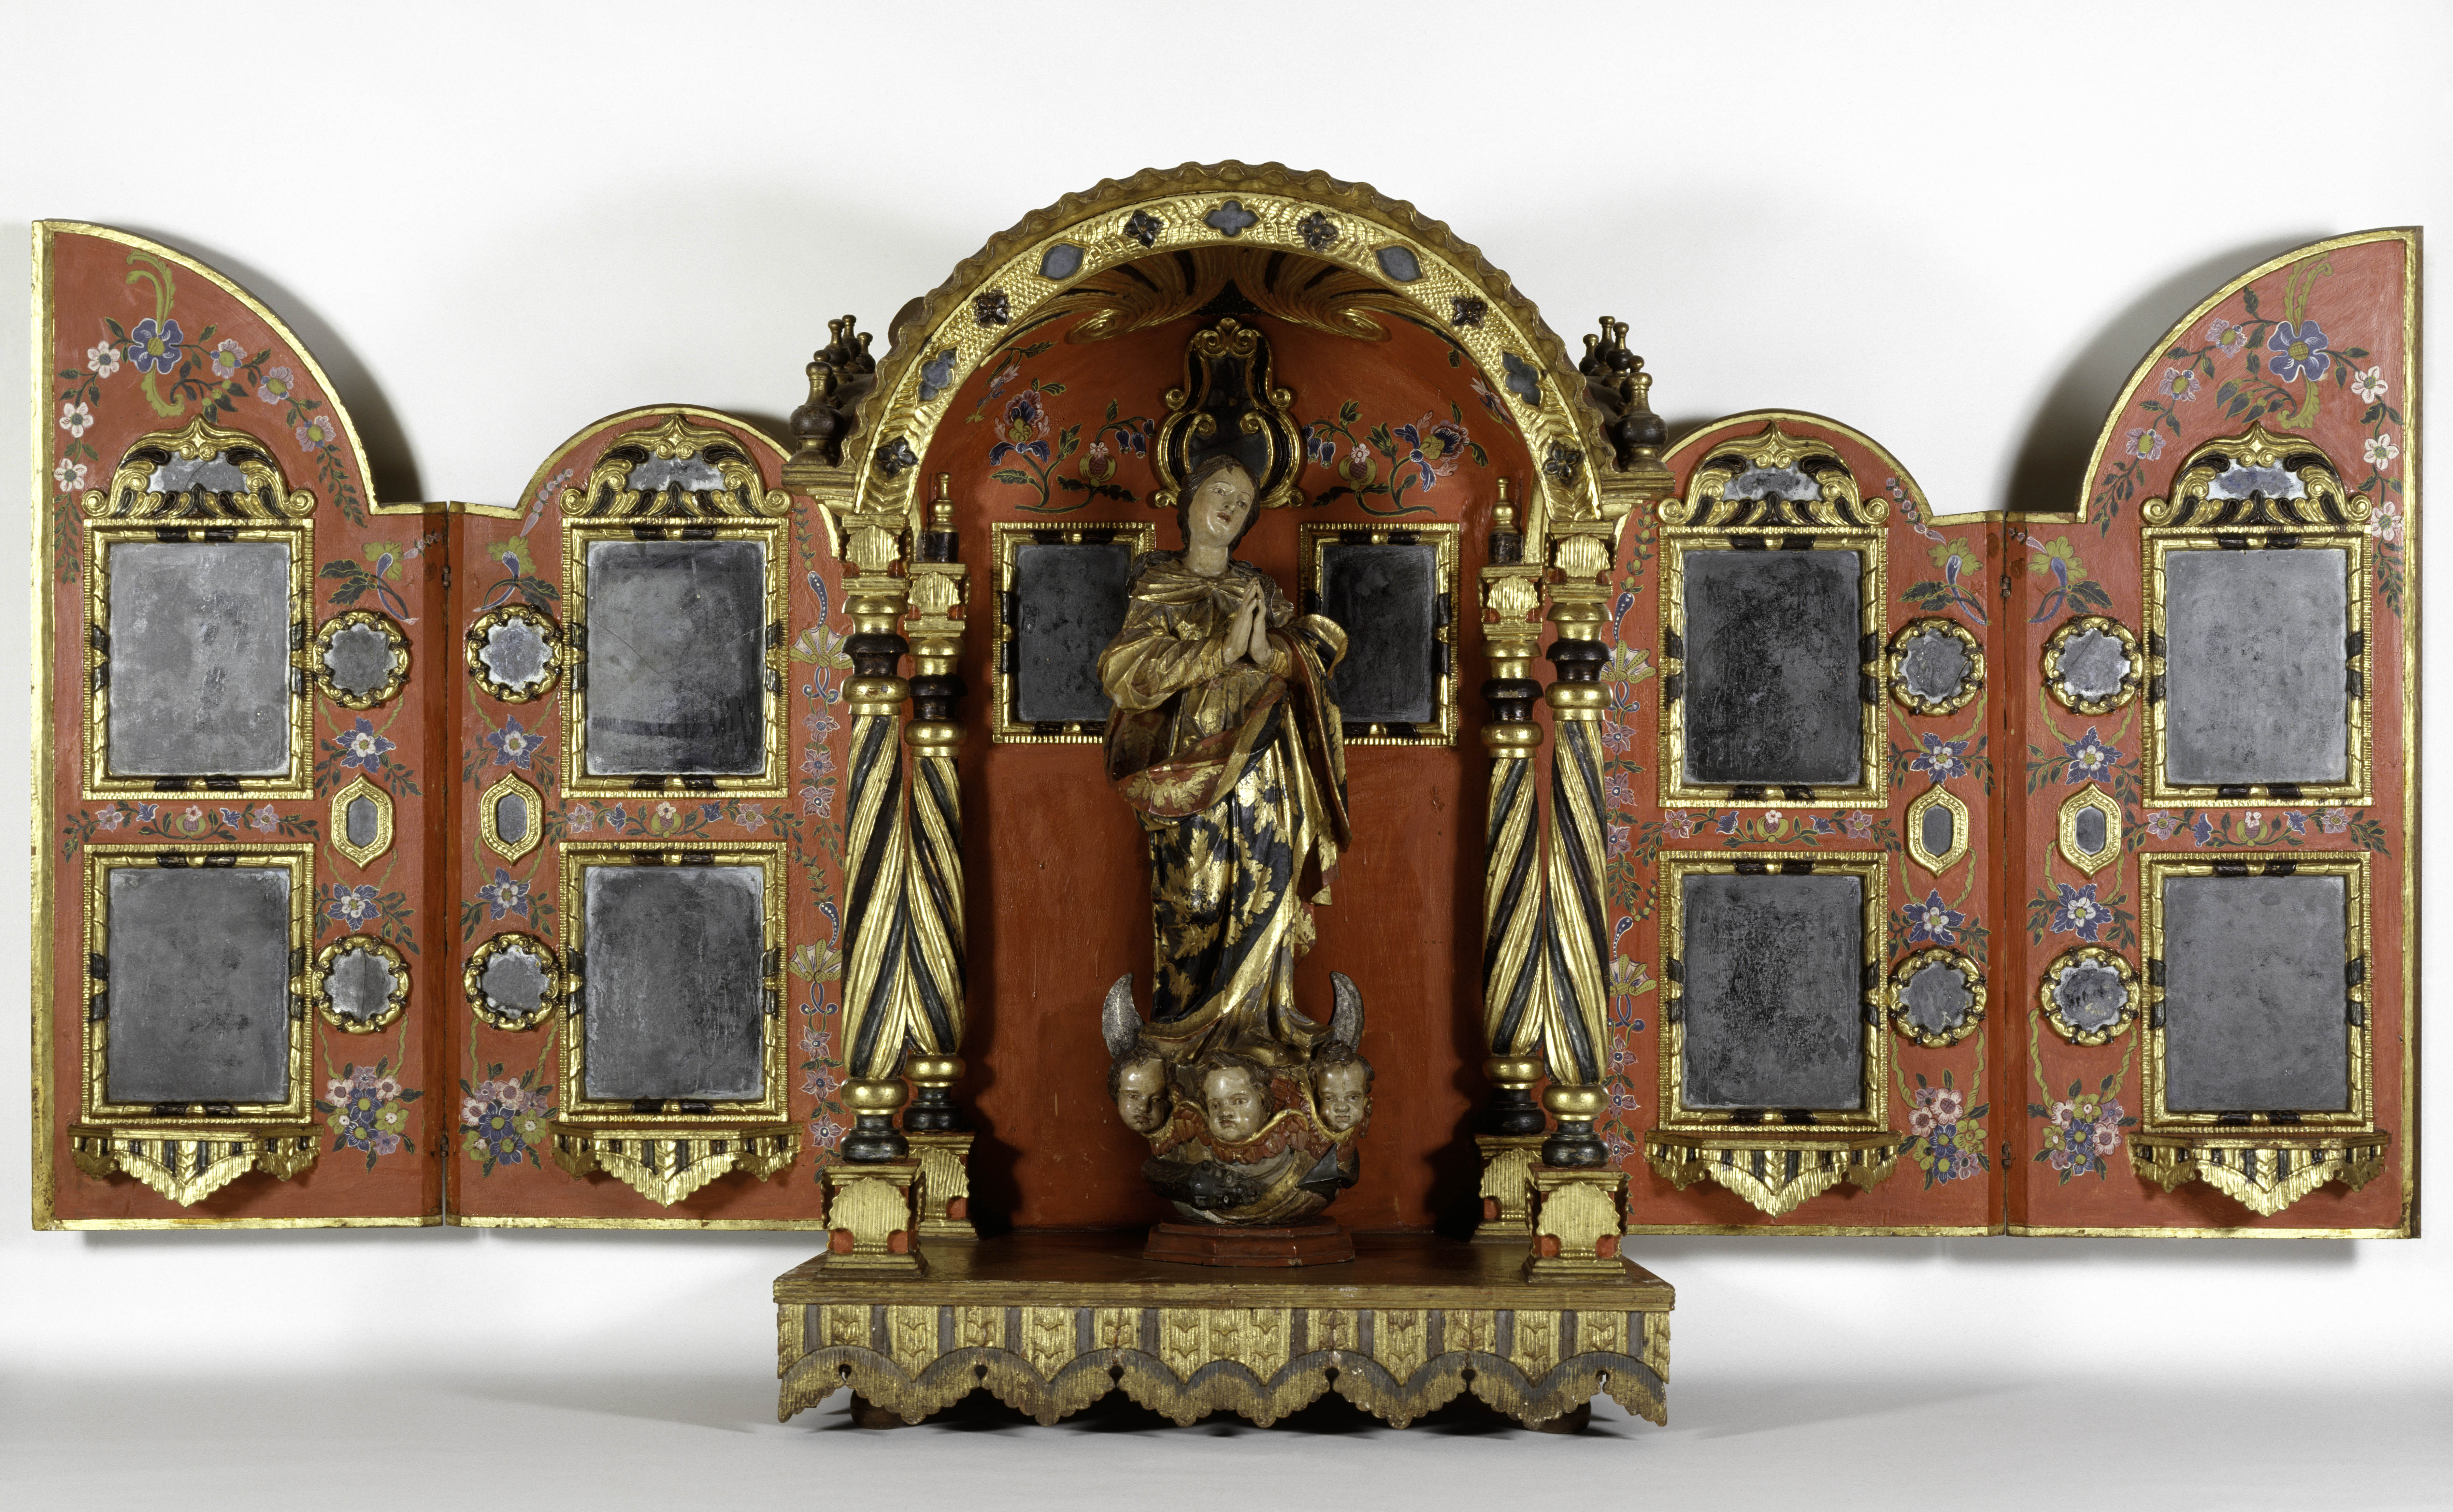 Unidentified artist (Mexico), Tabernacle, 18th century, gilded and painted wood, mirrors. Courtesy of the Coleccíón Patricia Phelps de Cisneros